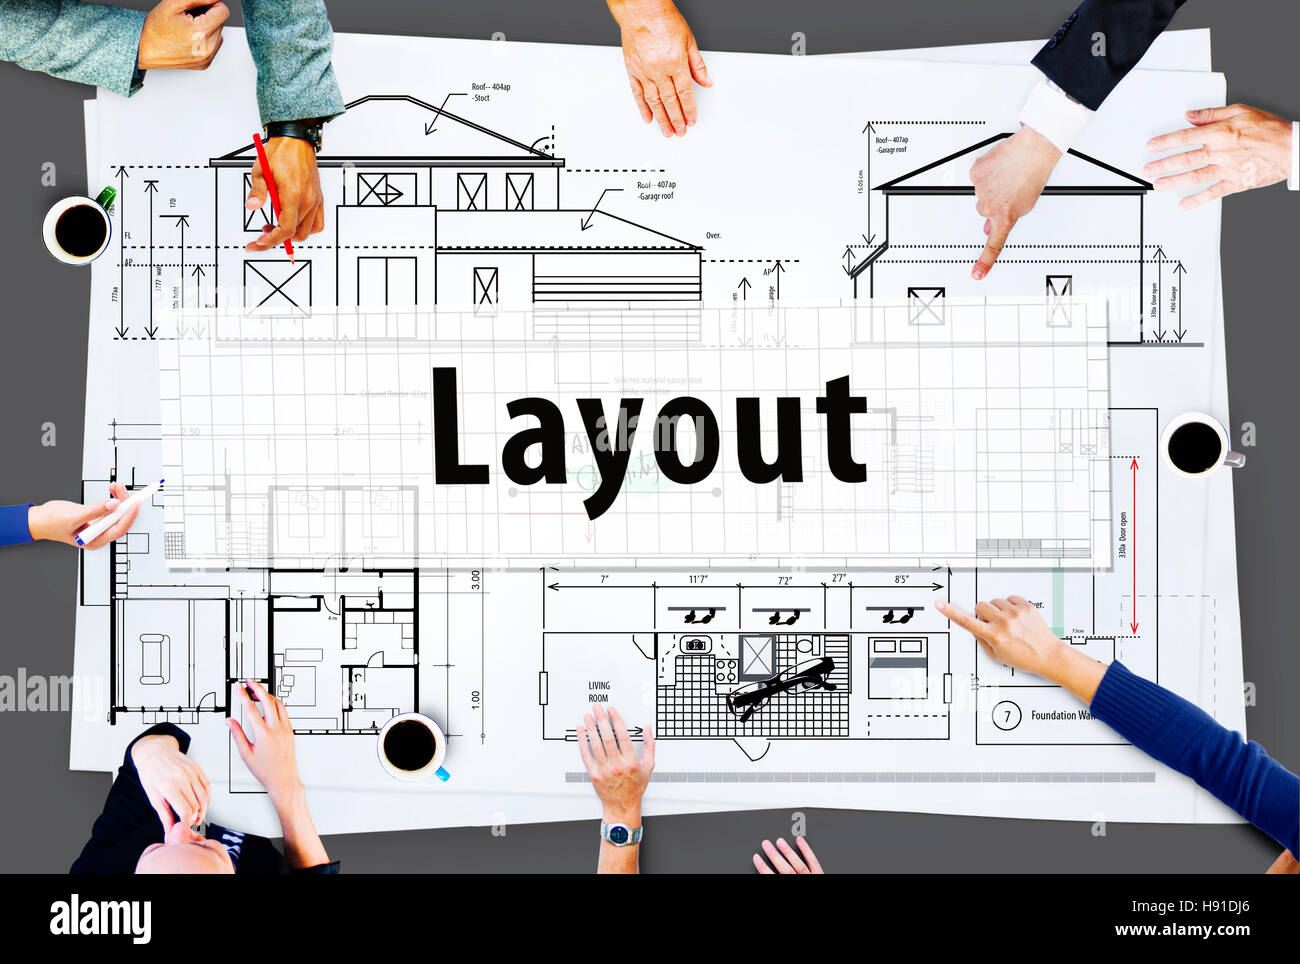 Layout Architect Construct Design Drawing Concept - Stock Image